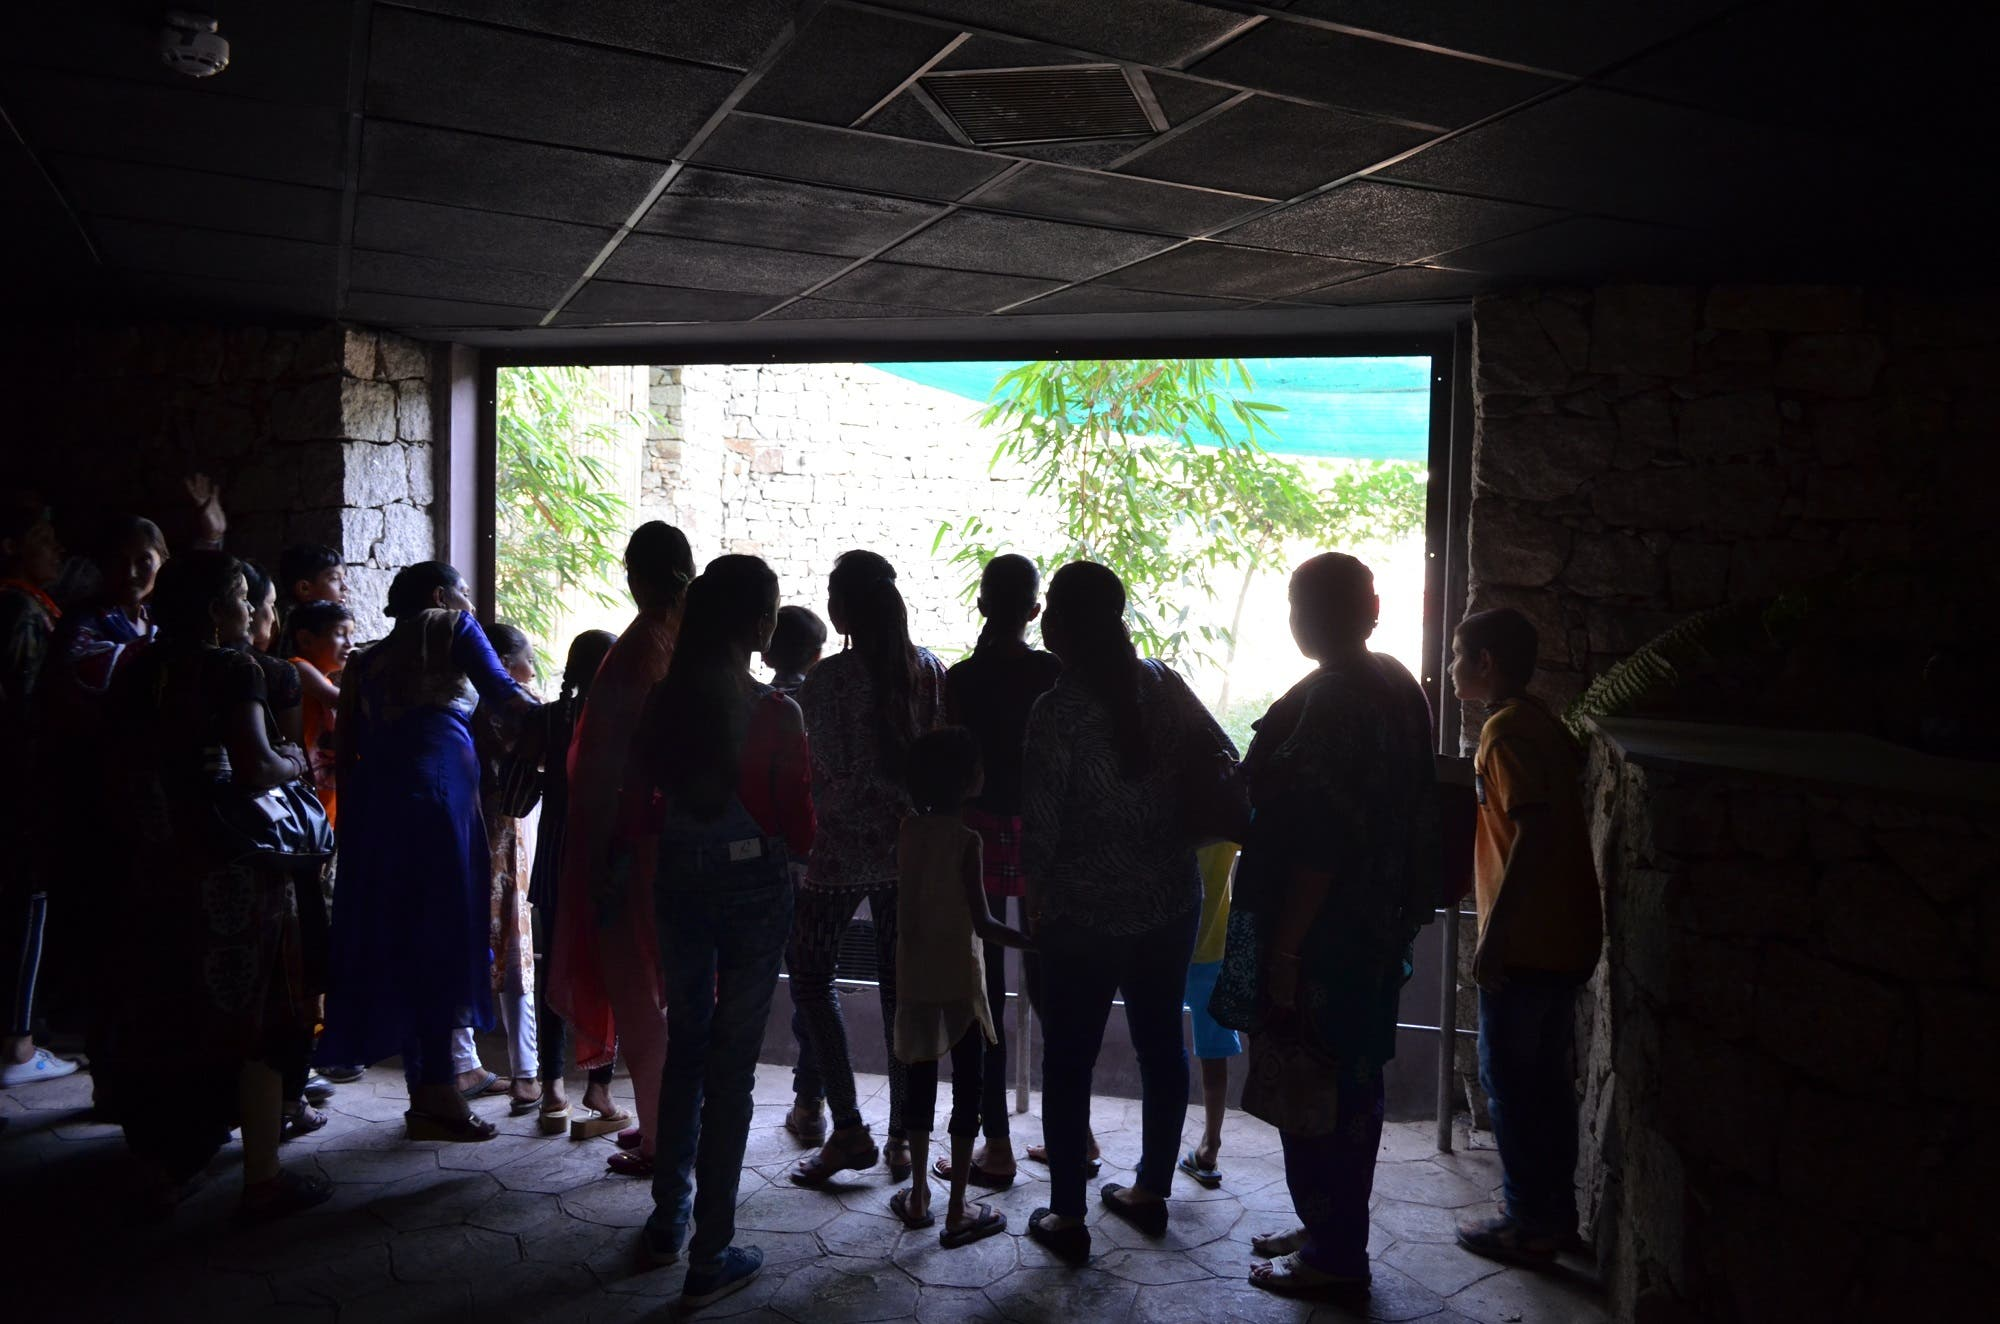 Visitors watch though gigantic glass enclosures in a cave in the nocturnal zoo. (Supplied)